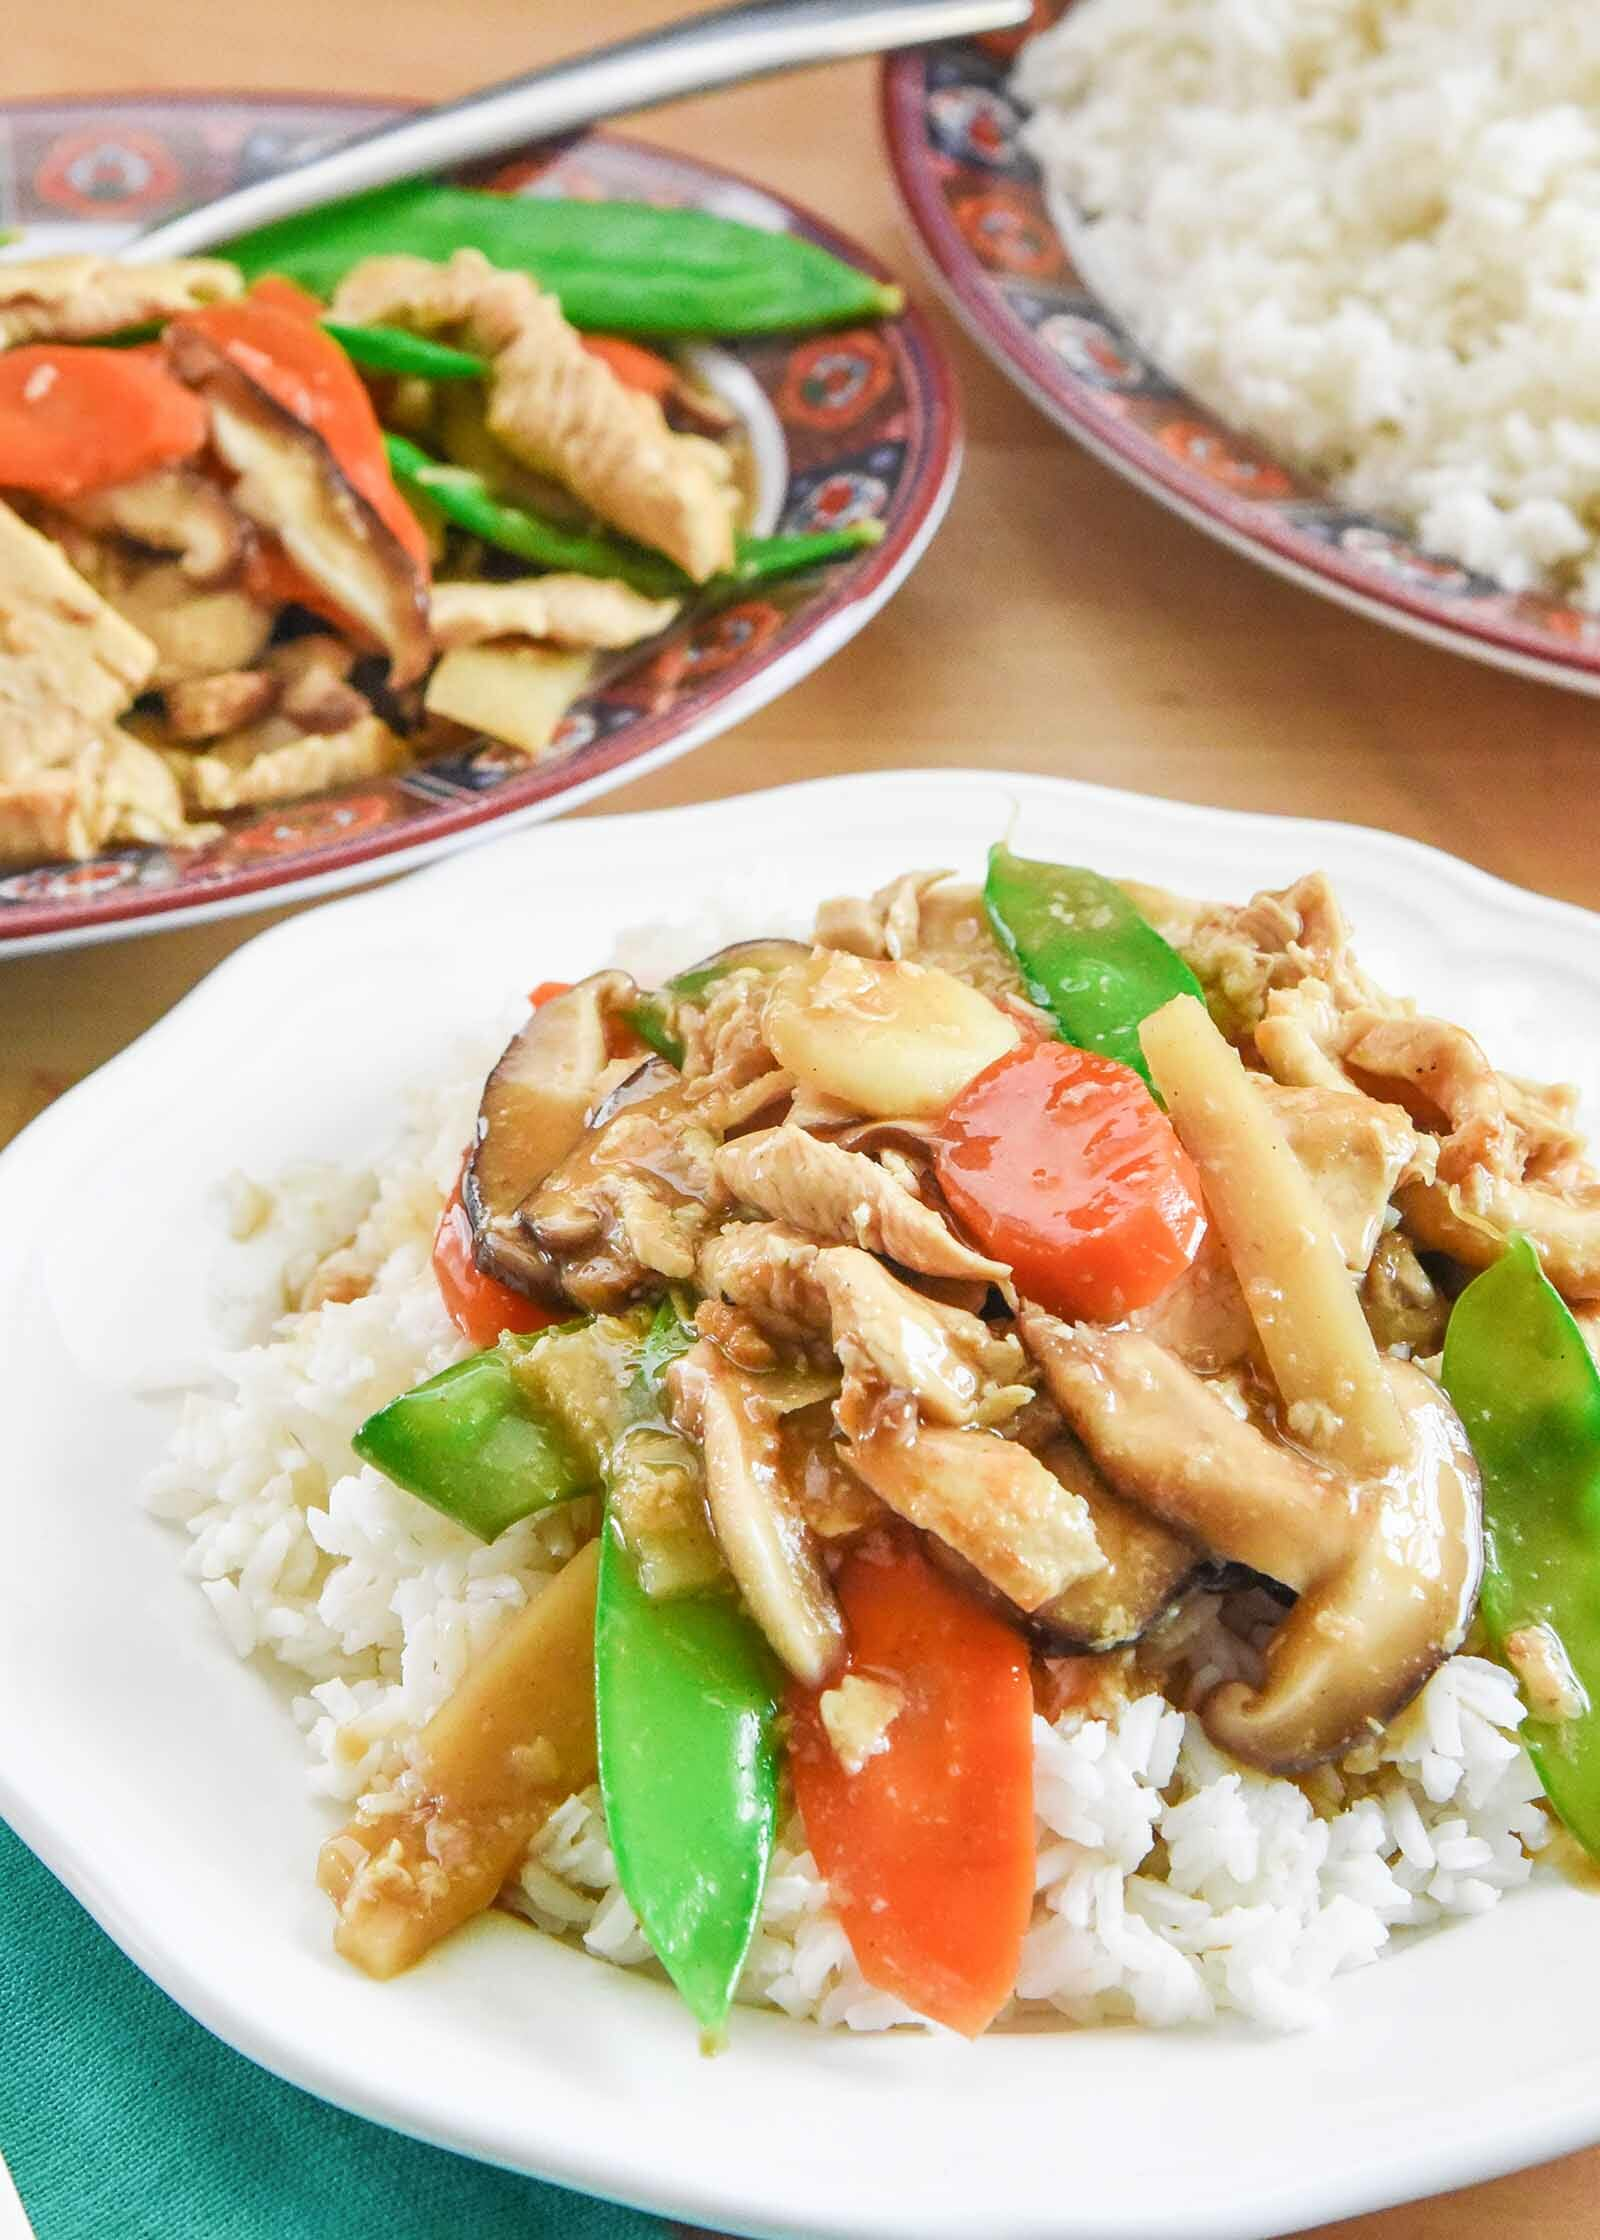 Moo Goo Gai Pan Chinese Food on a white plate with a platter